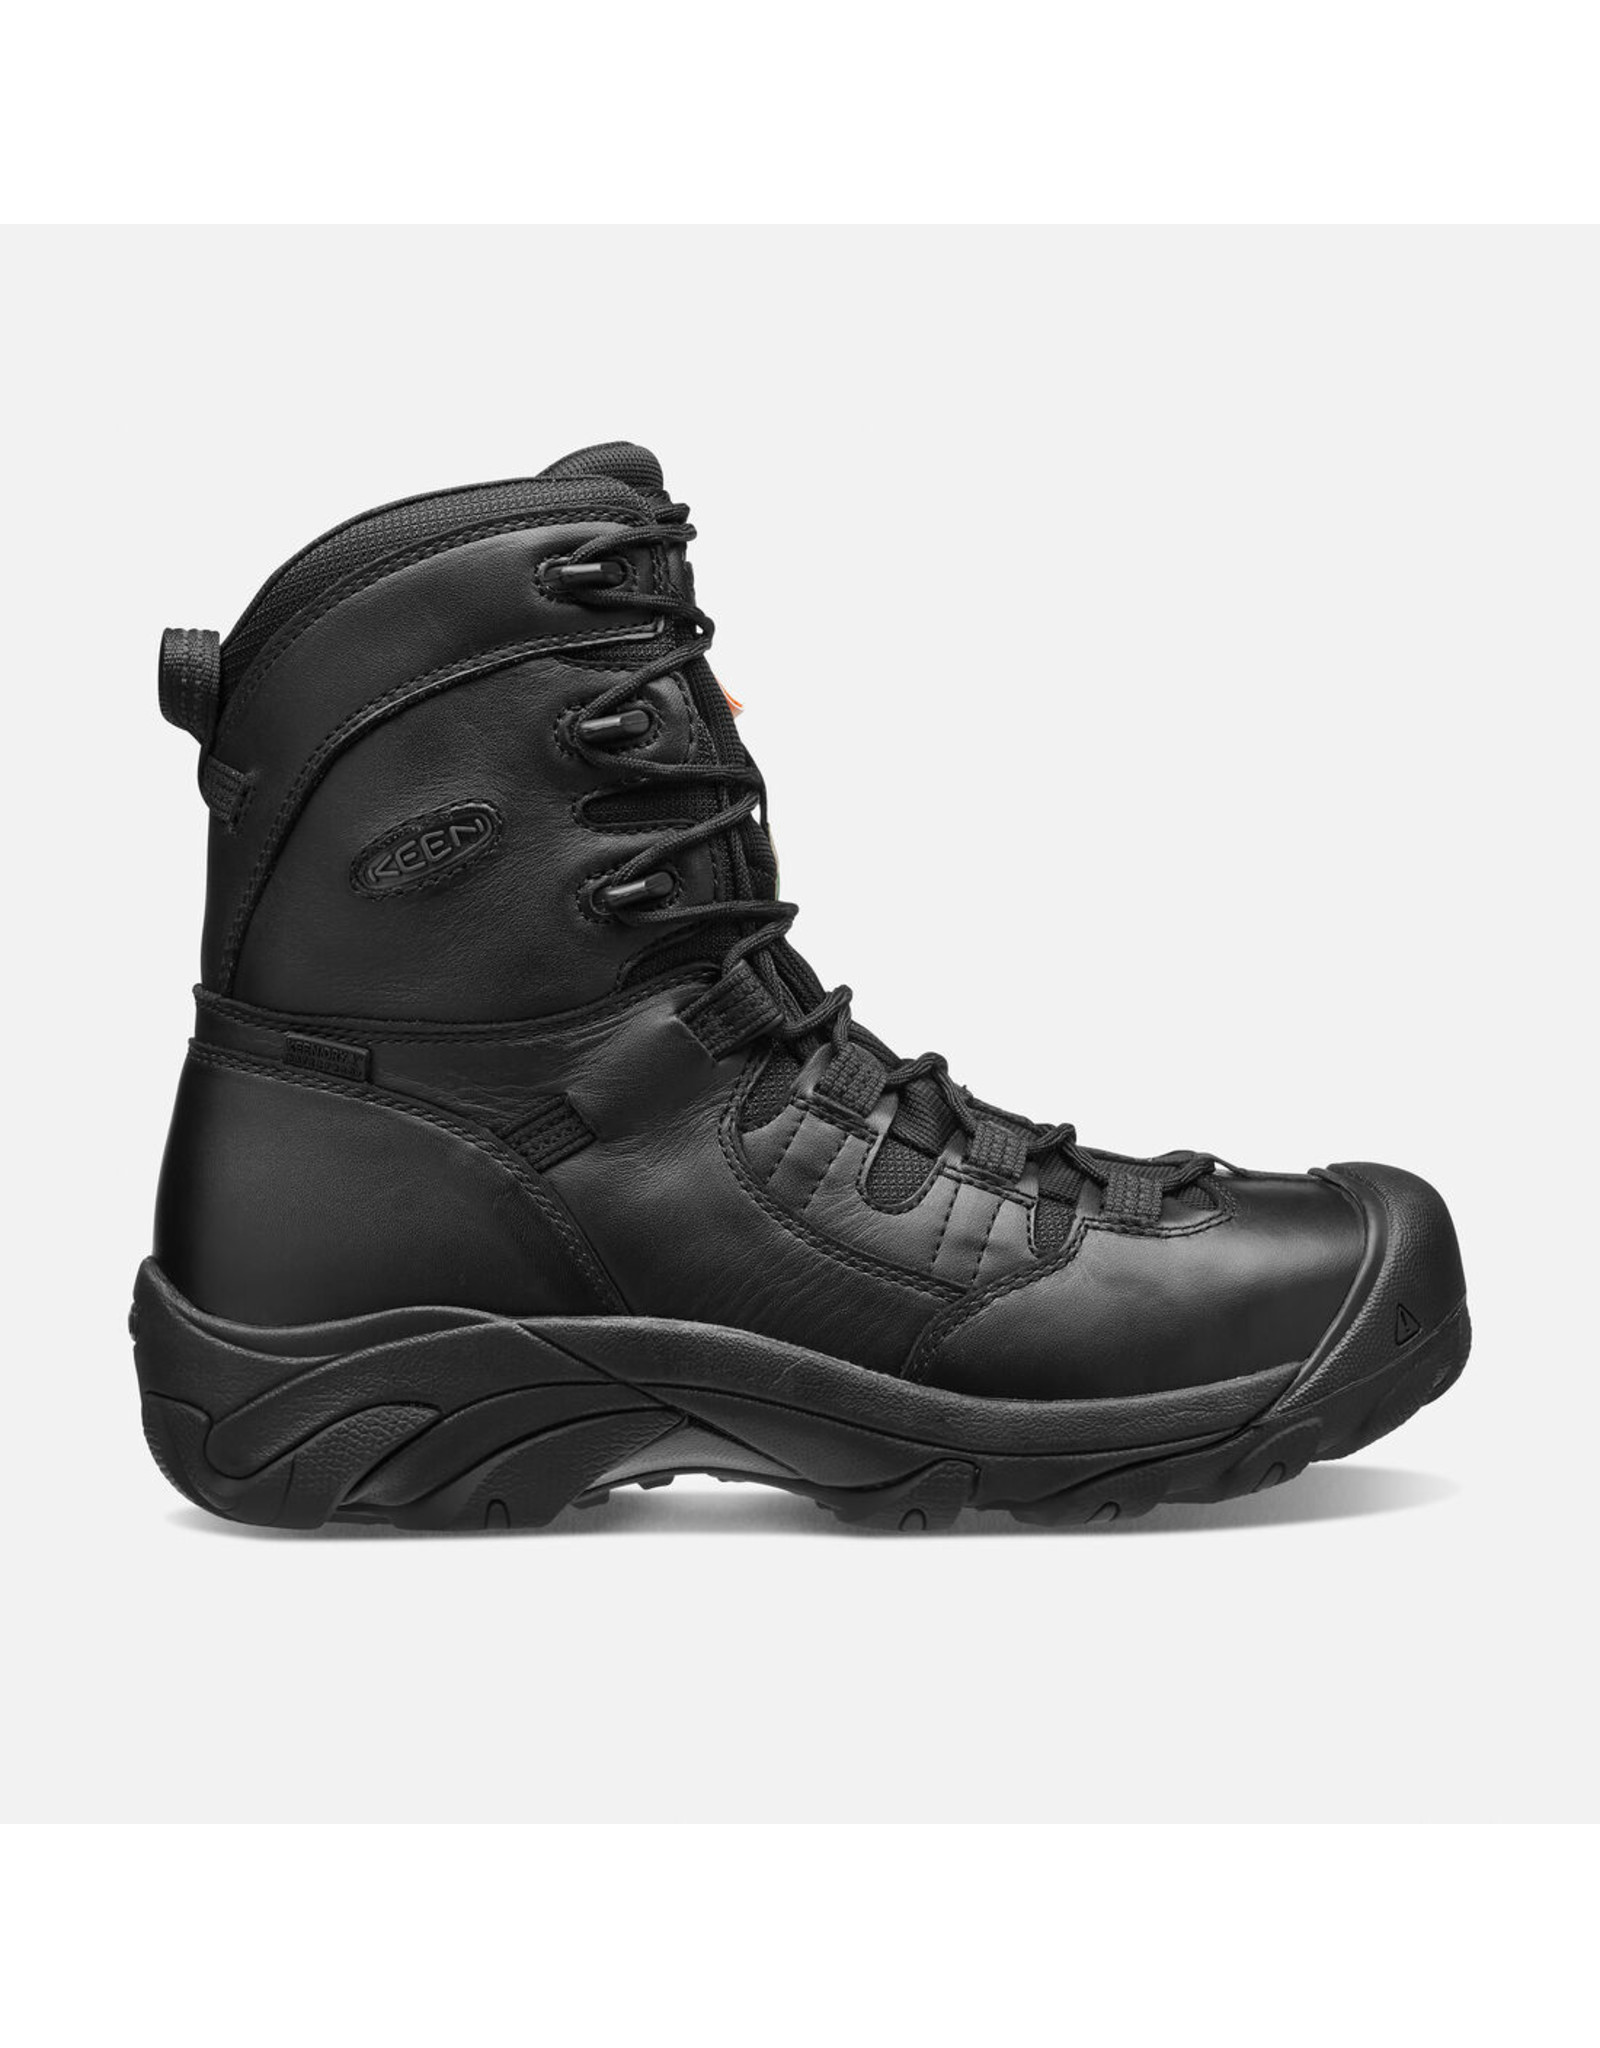 "KEEN FOOTWEAR CSA OSHAWA 8"" BOOT (MEN'S)"